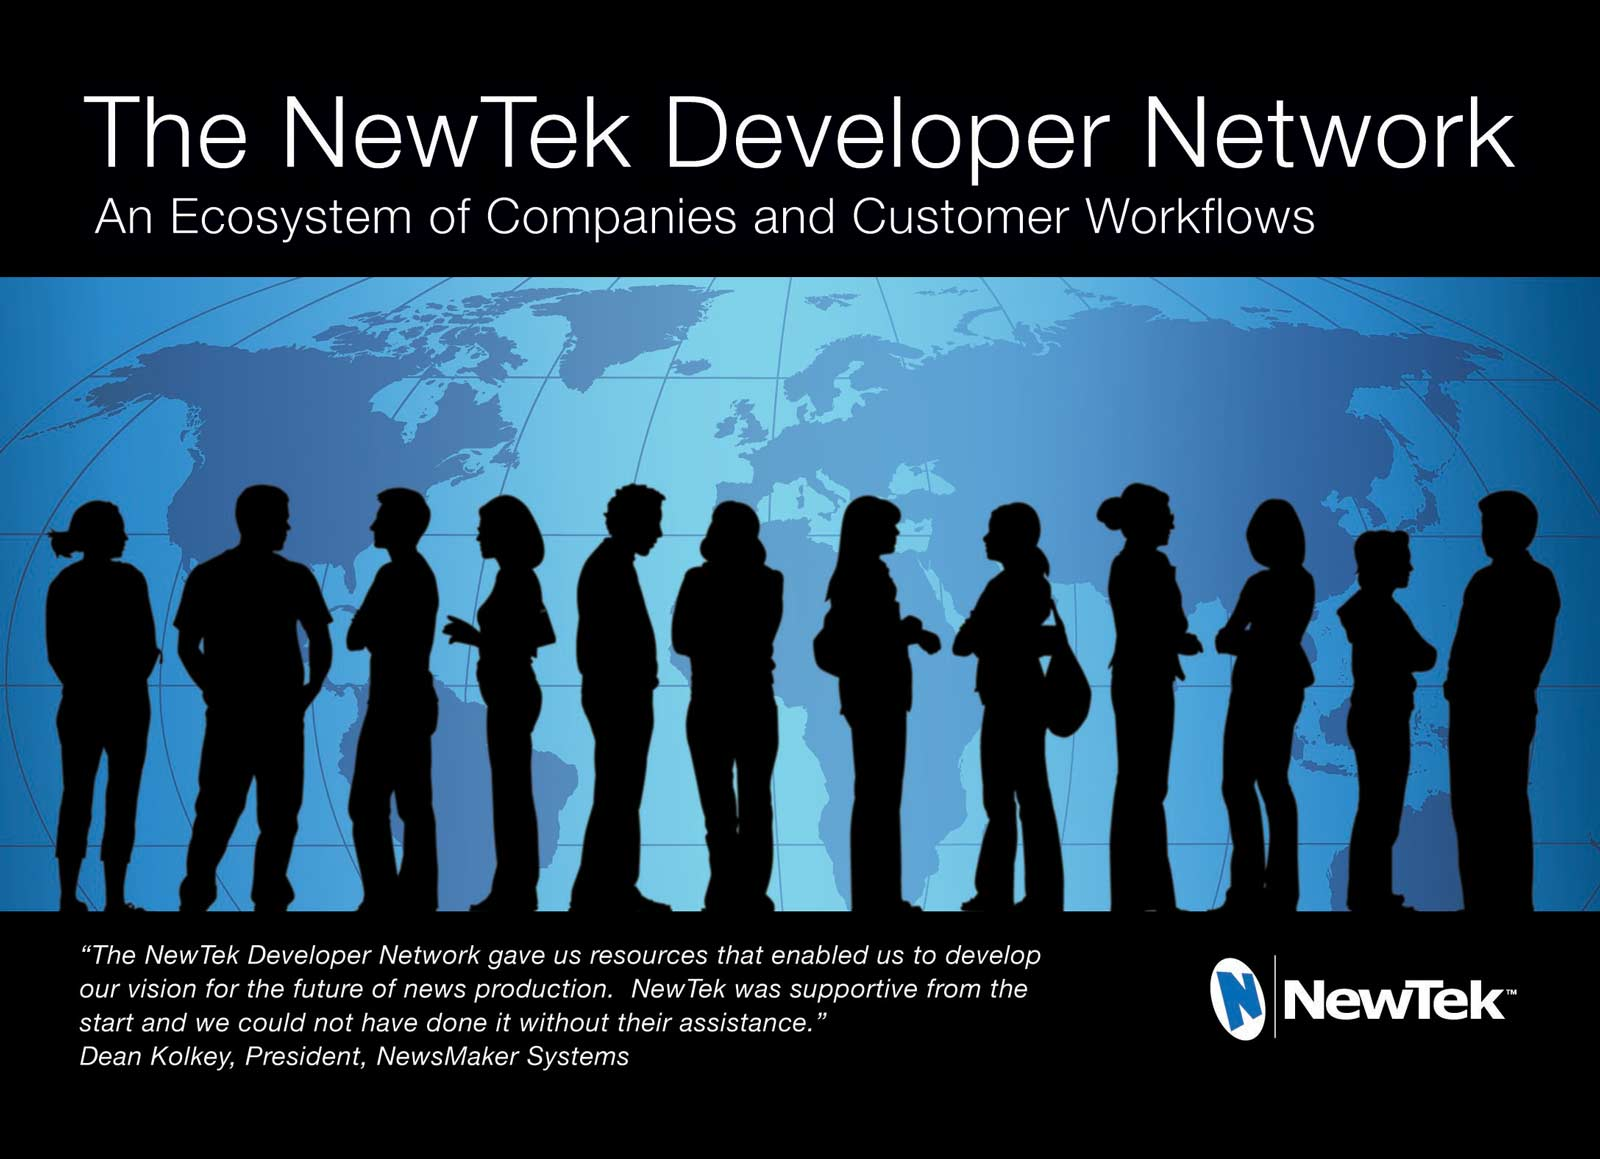 NewTek Developer Network